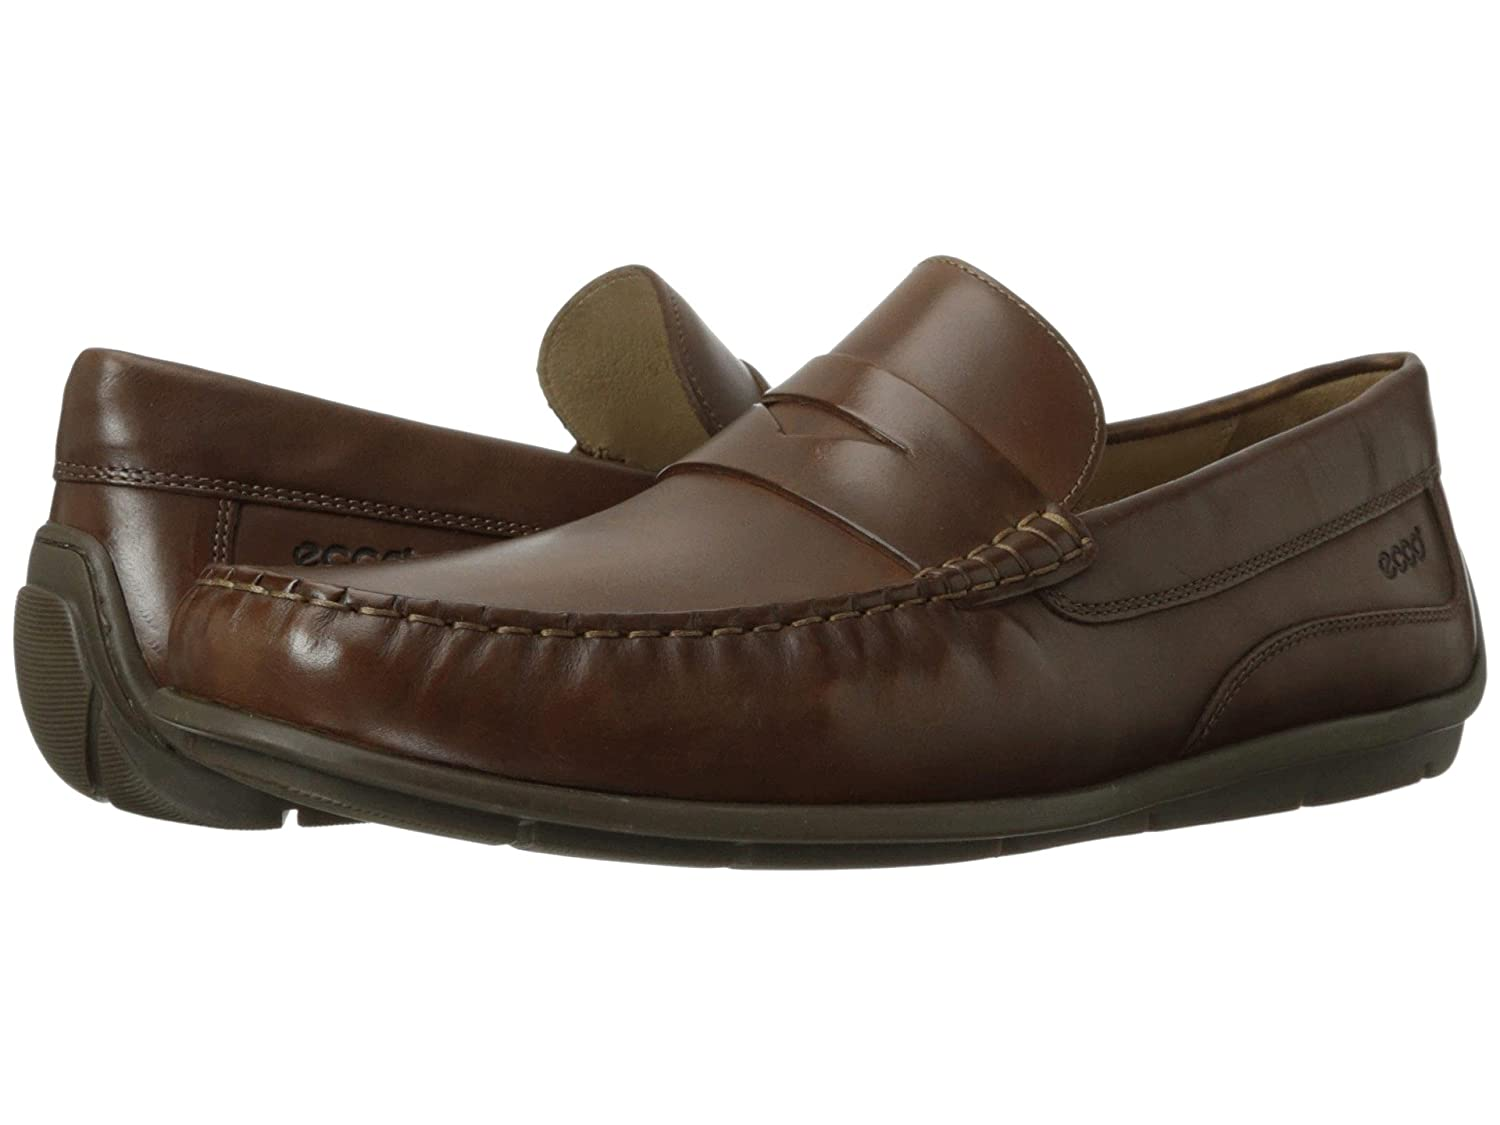 5d31230b Amazon.com | ECCO Men's Classic Penny Loafer | Loafers & Slip-Ons